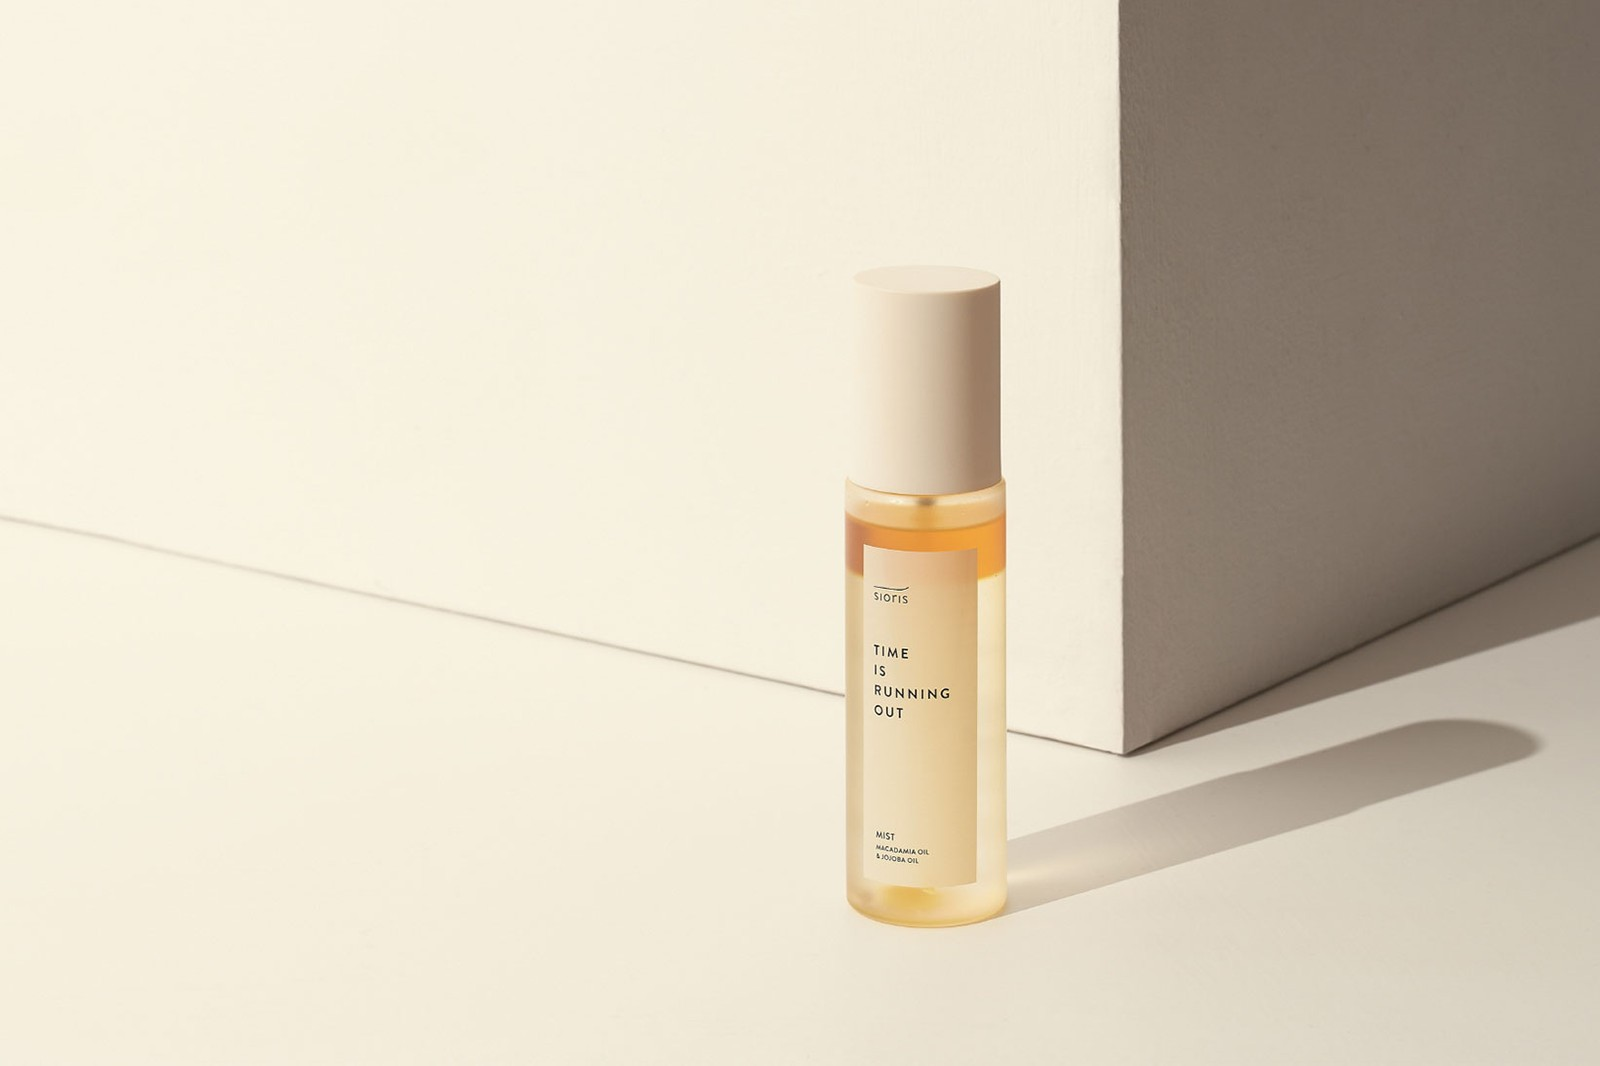 sustainable eco-friendly korean beauty brands sioris time is running out face mist